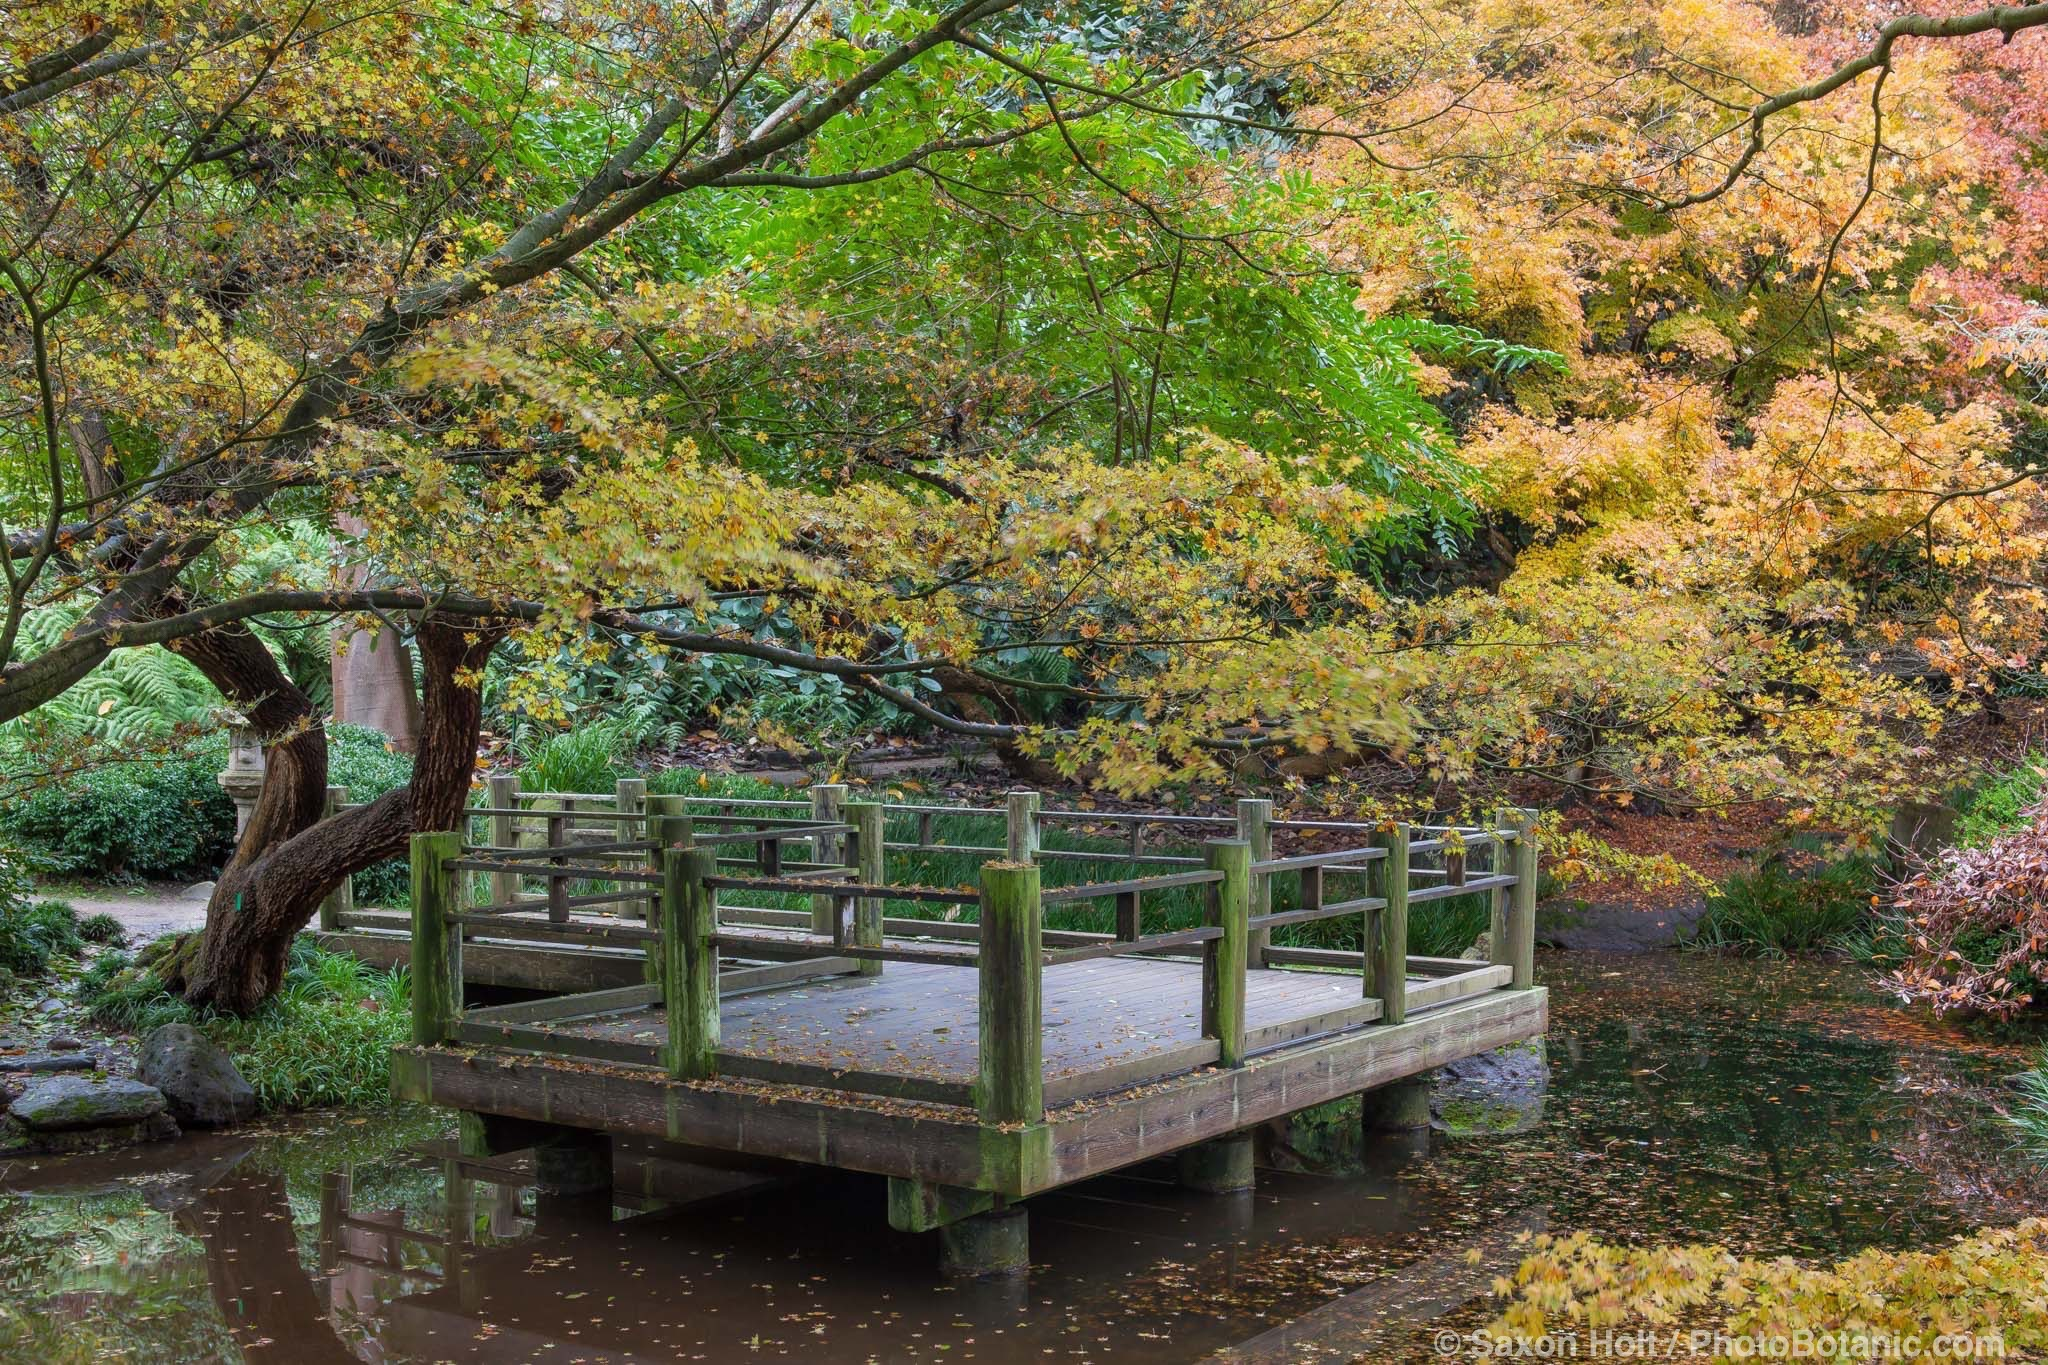 Platform viewing deck over pond in Moon Viewing Garden in San Francisco Botanical Garden with fall foliage color in Japanese Maple trees.